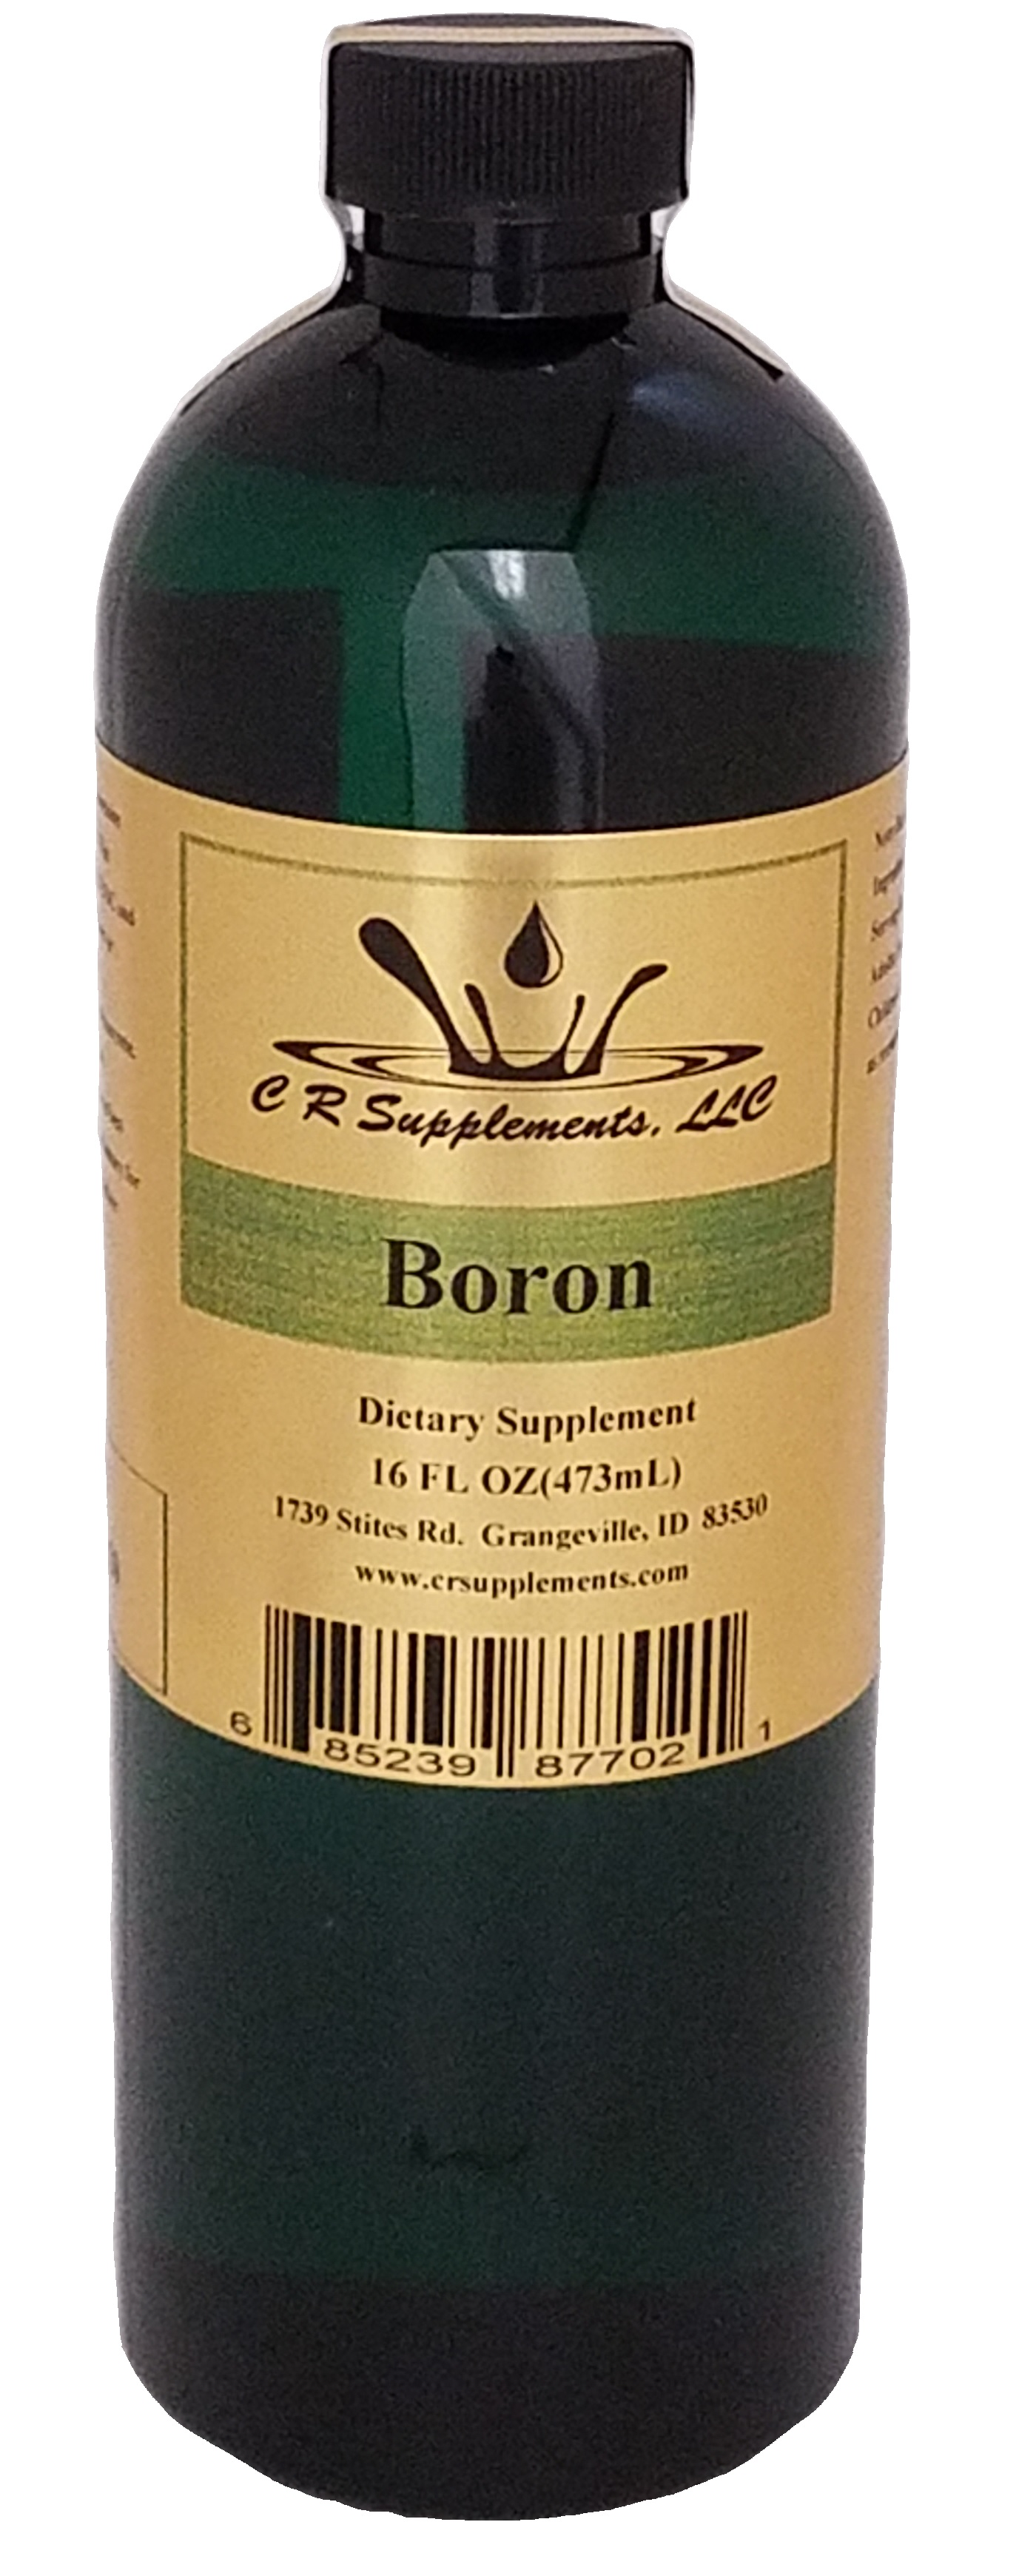 Boron Dietary Supplement, Boron, WaterOz Boron Replacement, Liquid dietary supplement, Kosher of America approved, KOA approved, Pareve, vegan application, elemental mineral, flexible liquid mineral, maximum absorption